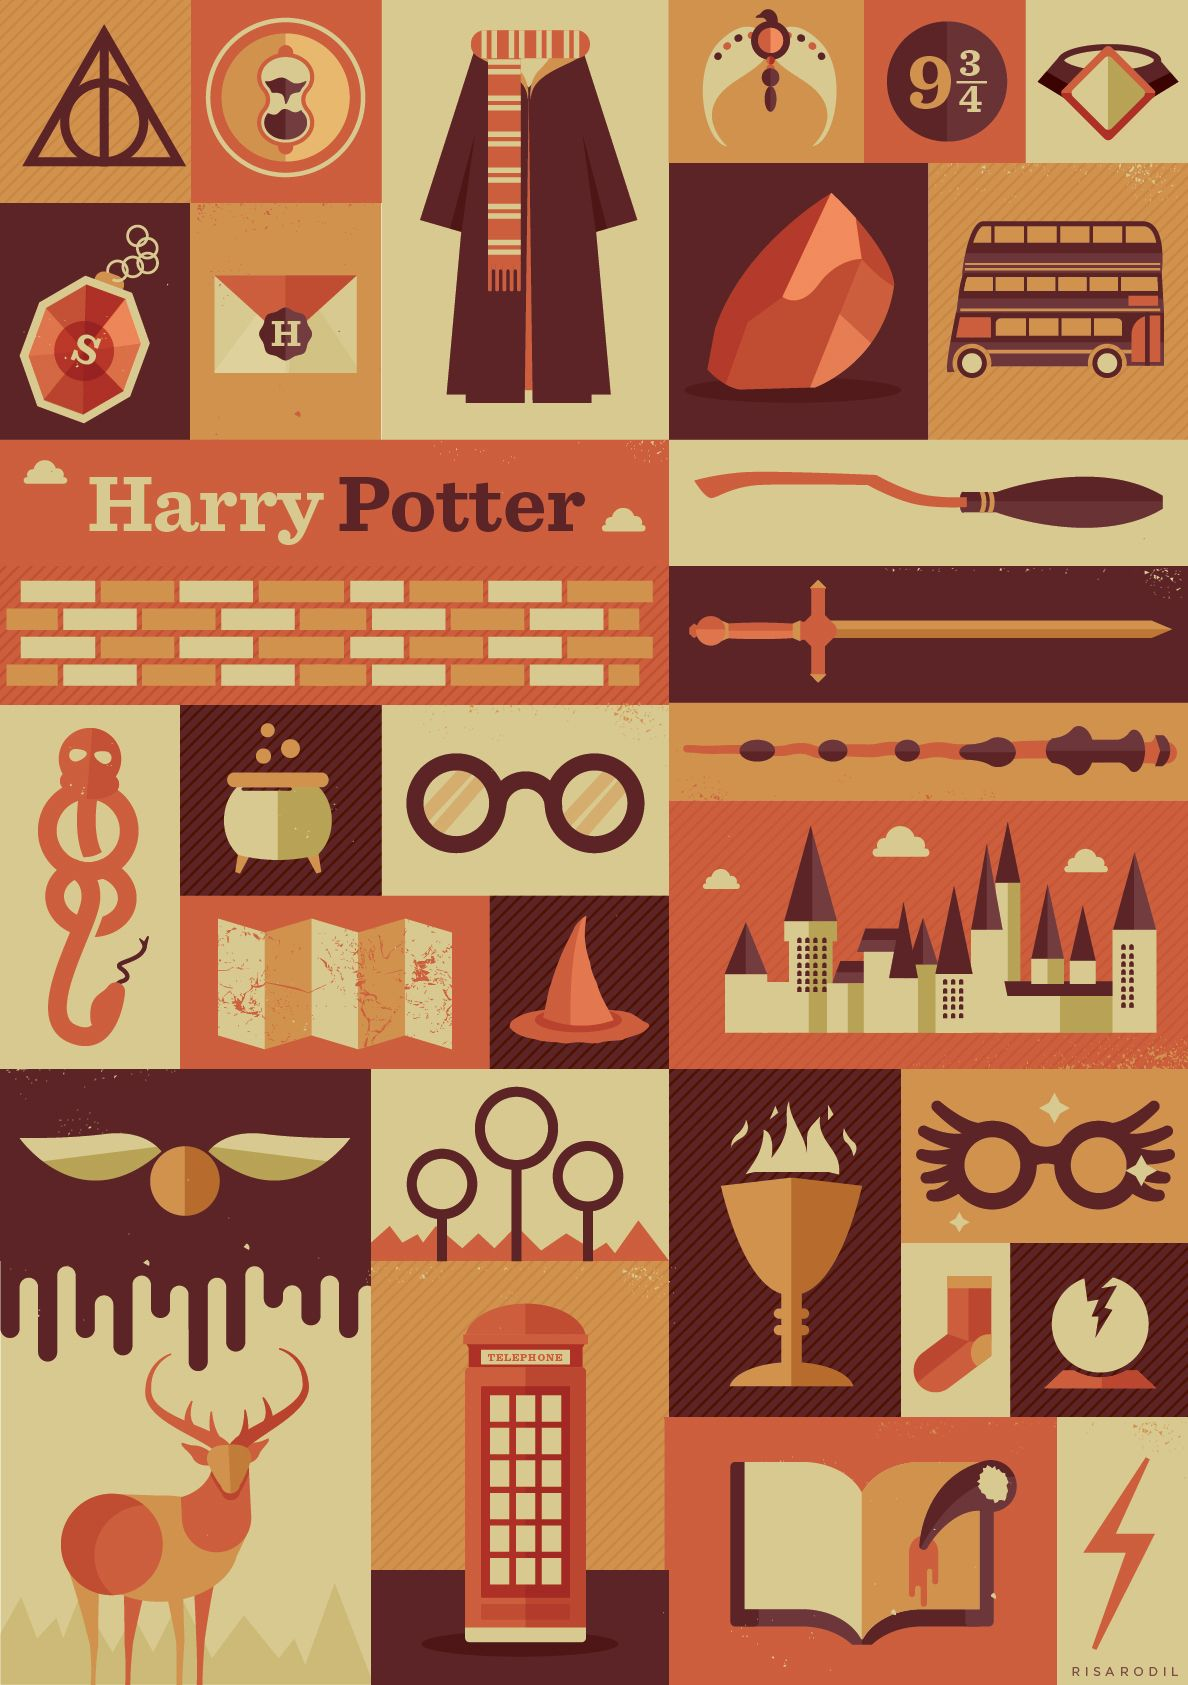 Harry Potter Items Poster | Available inRedbubbleandSociety6 I felt really nostalgic doing this poster, but it was a lot of fun!If you want to see my previous posters like this, check here: Supernatural | WTNV | Sherlock